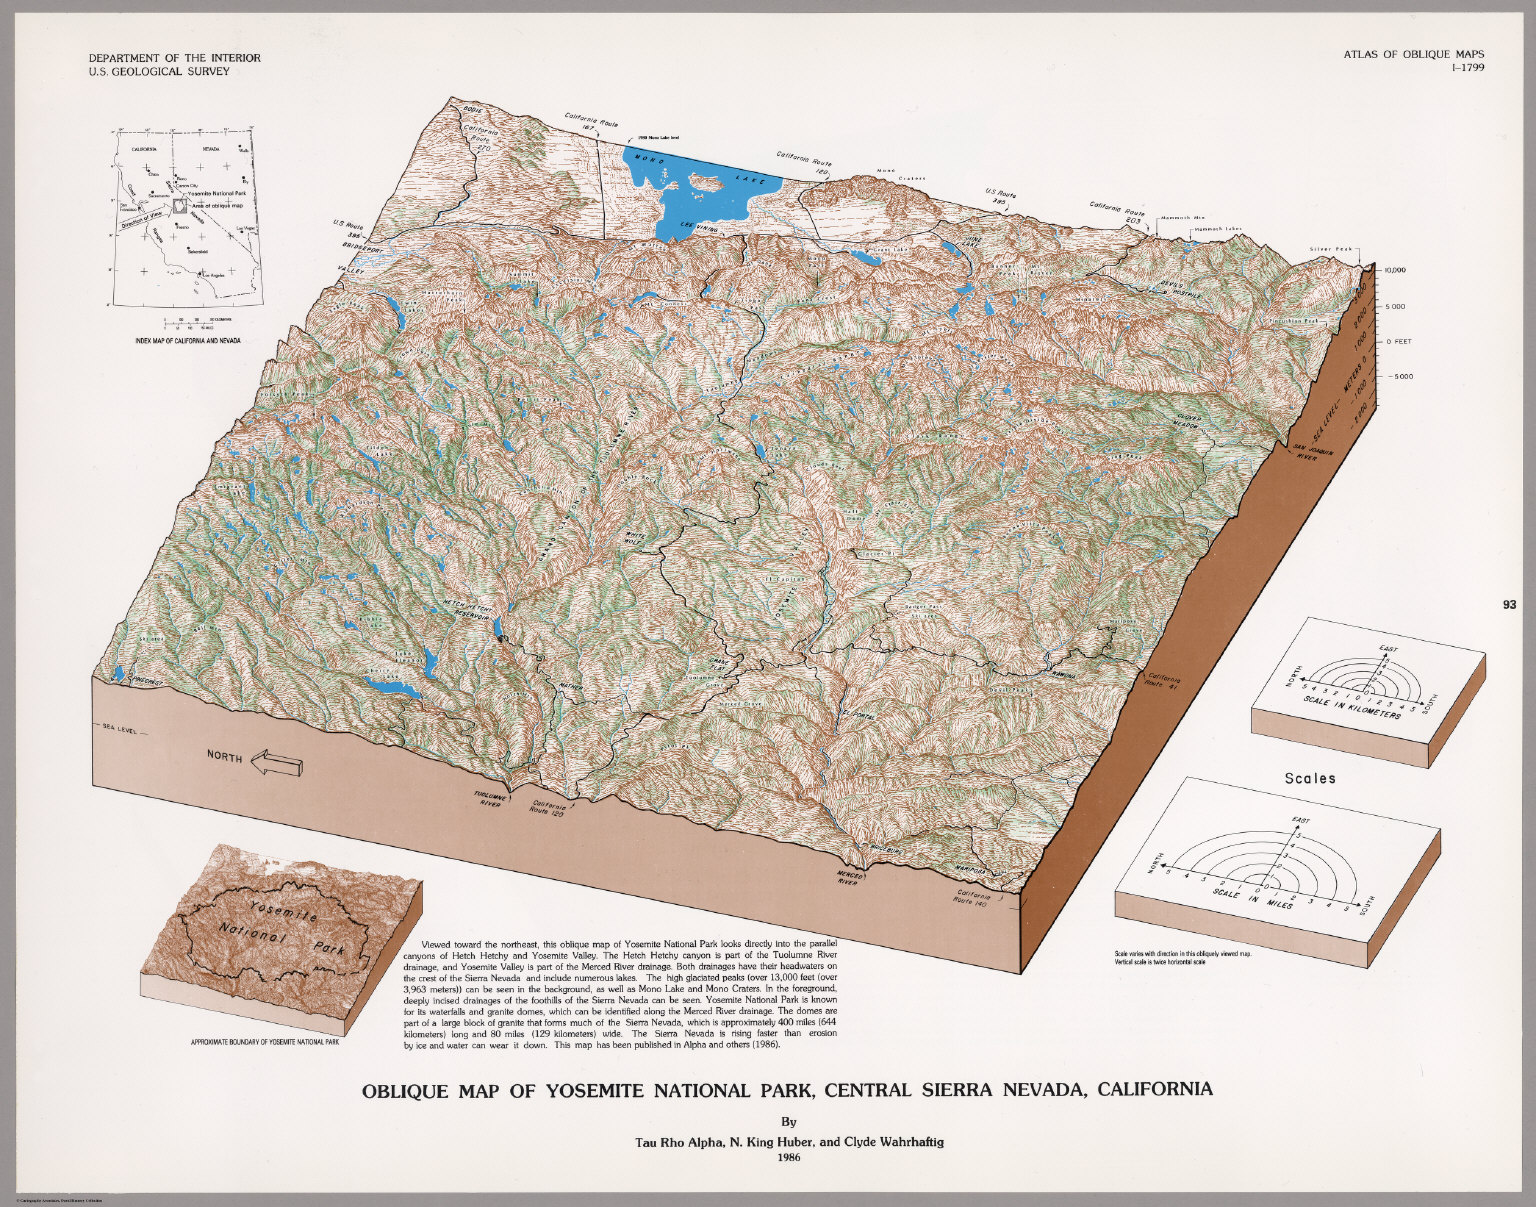 Oblique Map of Yosemite National Park, Central Sierra Nevada ... on yosemite valley, las vegas map, yosemite weather, california map, death valley map, yosemite meadows, yosemite lost brother, lake tahoe map, yellowstone map, yosemite screenshots, yosemite wallpaper, yosemite animals, yosemite fire, yosemite waterfalls, yosemite camping, yosemite wildlife, grand canyon map, mariposa grove map, gold rush country map,